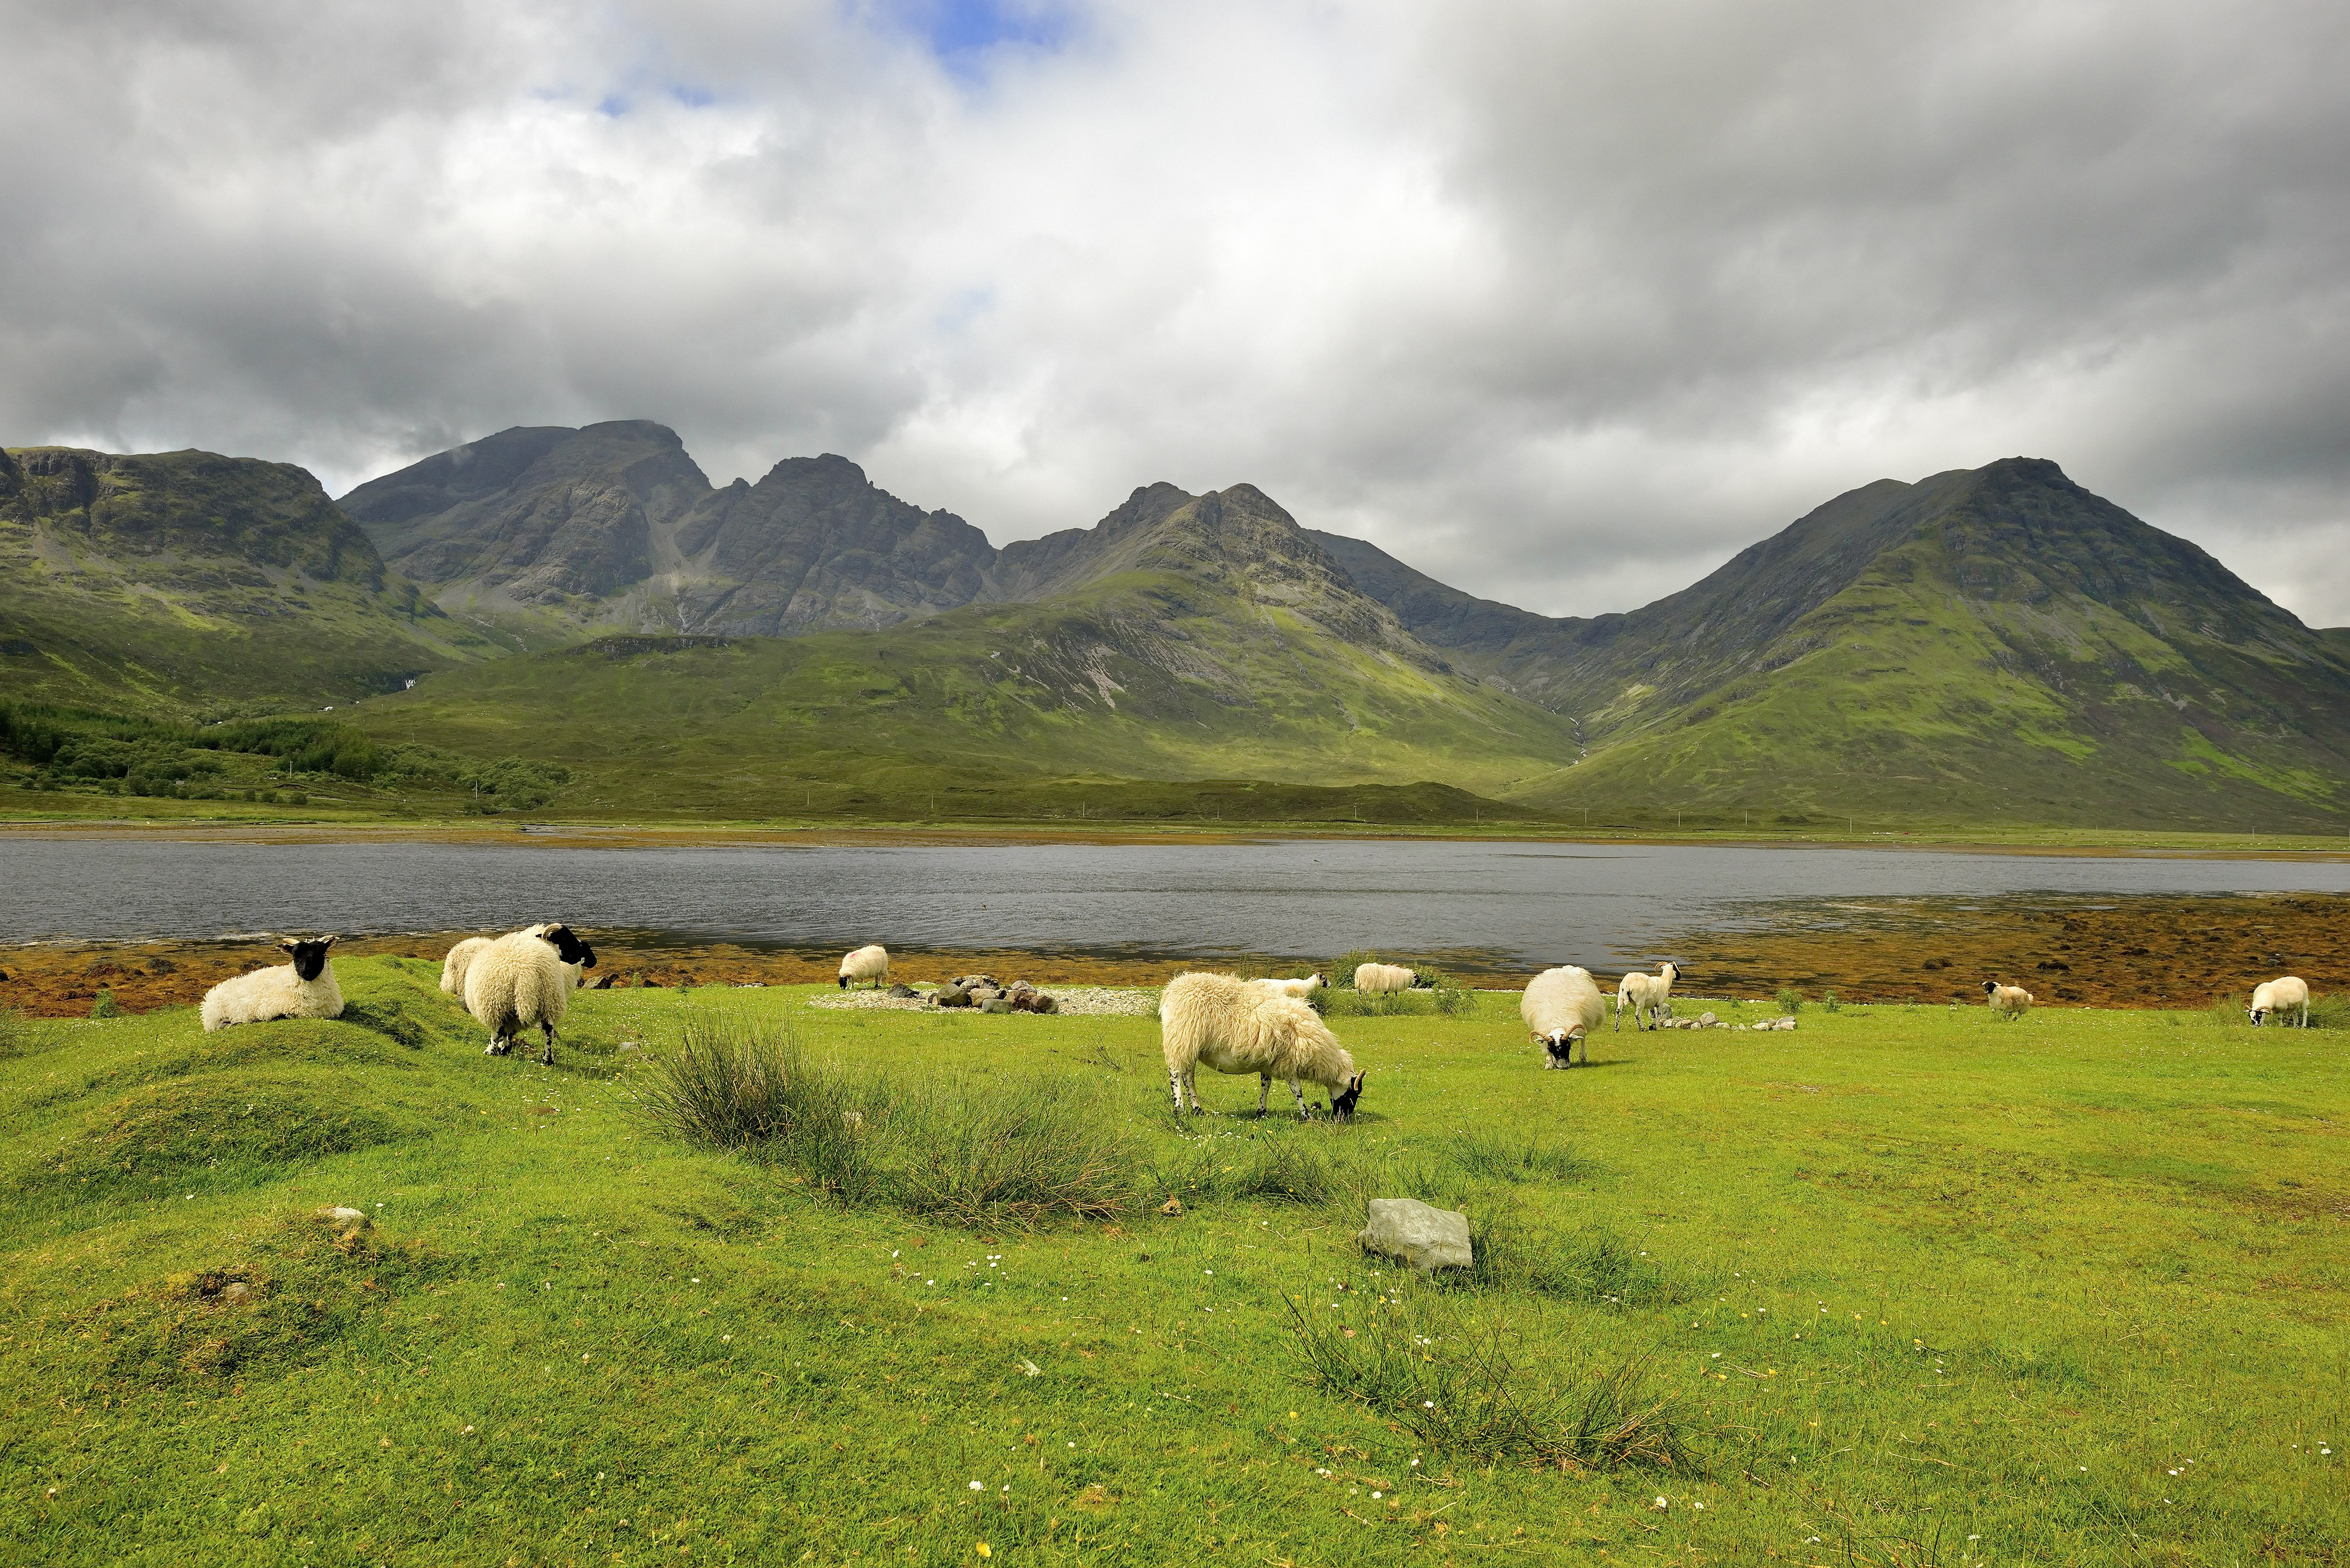 Flock of sheep 2 at Elgol w grass water and hills - Shutterstock.jpg